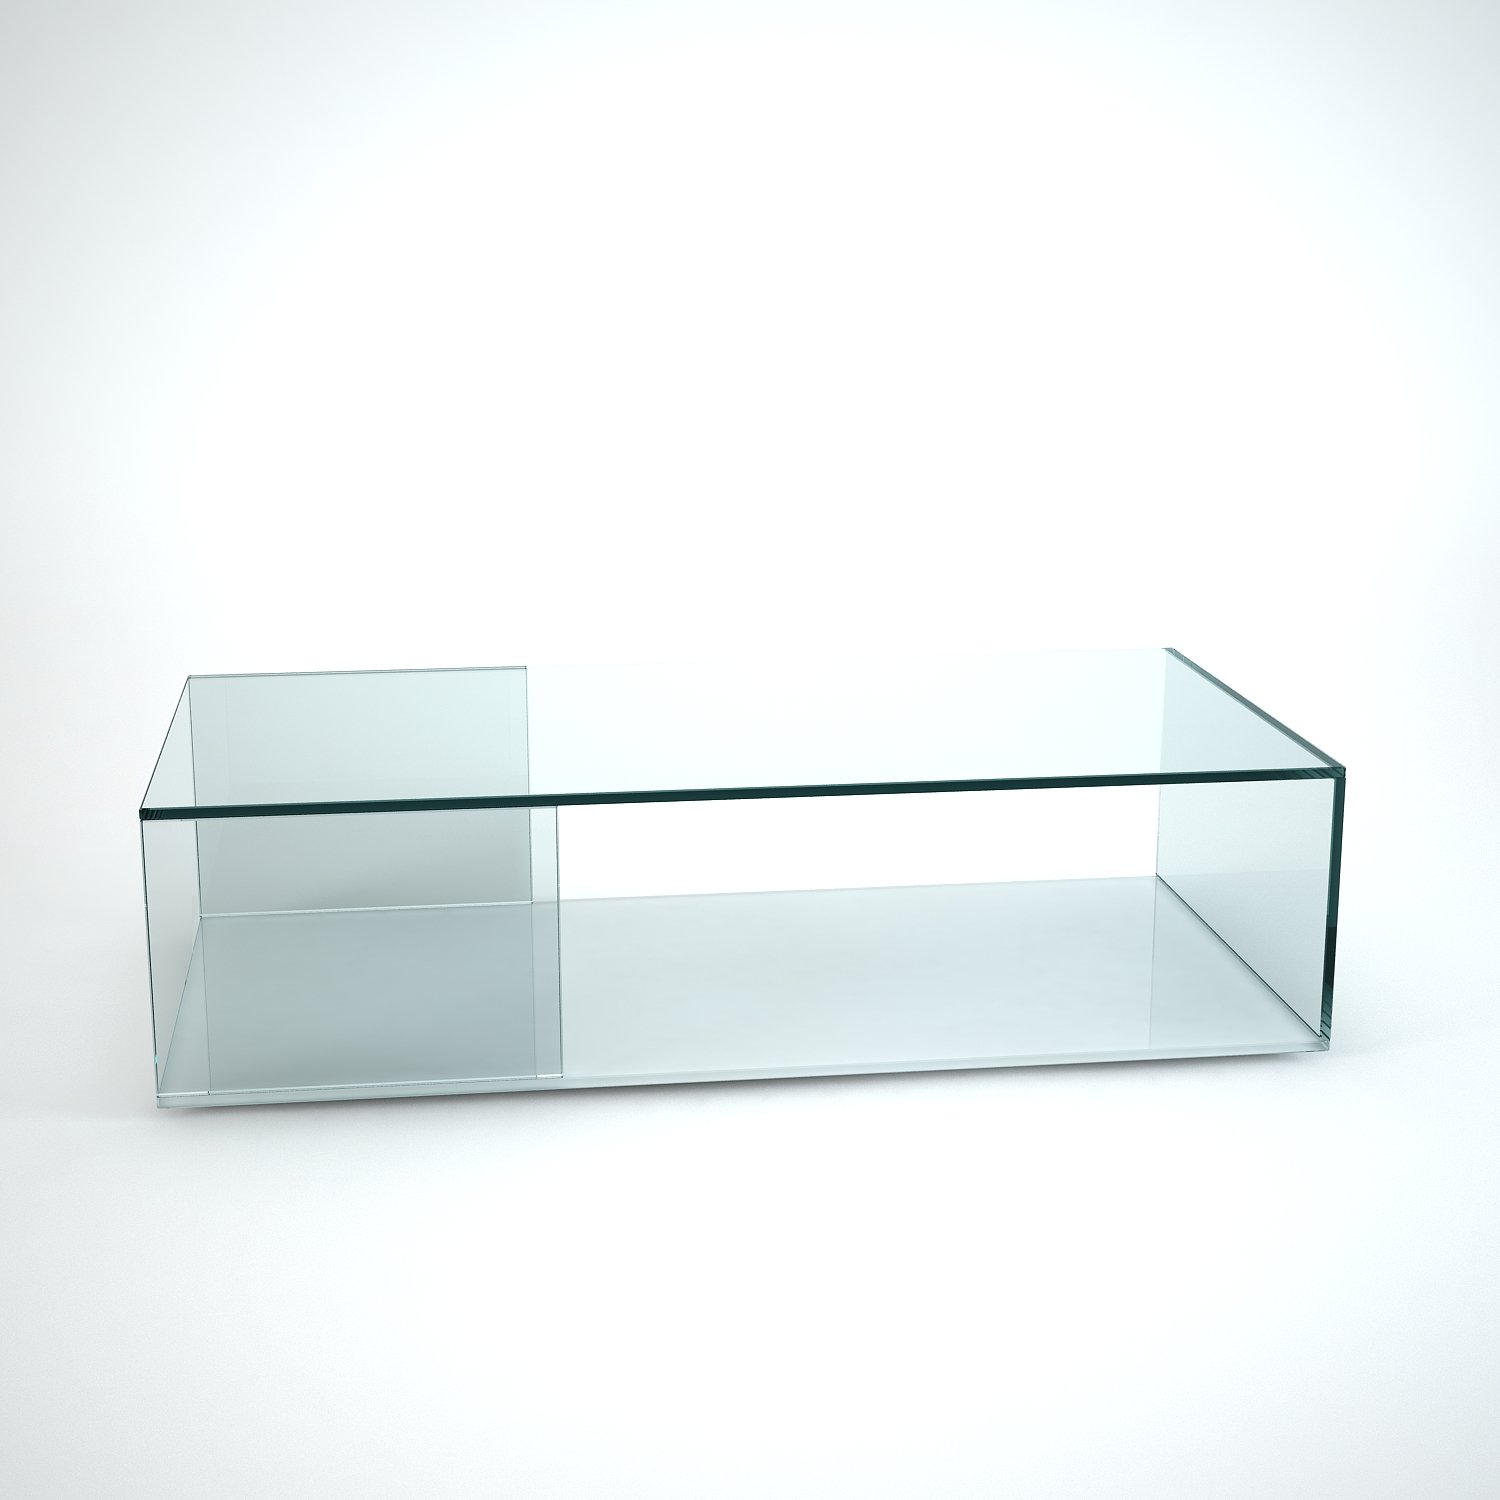 Glass Coffee Tables Uk Only: Tifino Rectangular Glass Coffee Table By Klarity